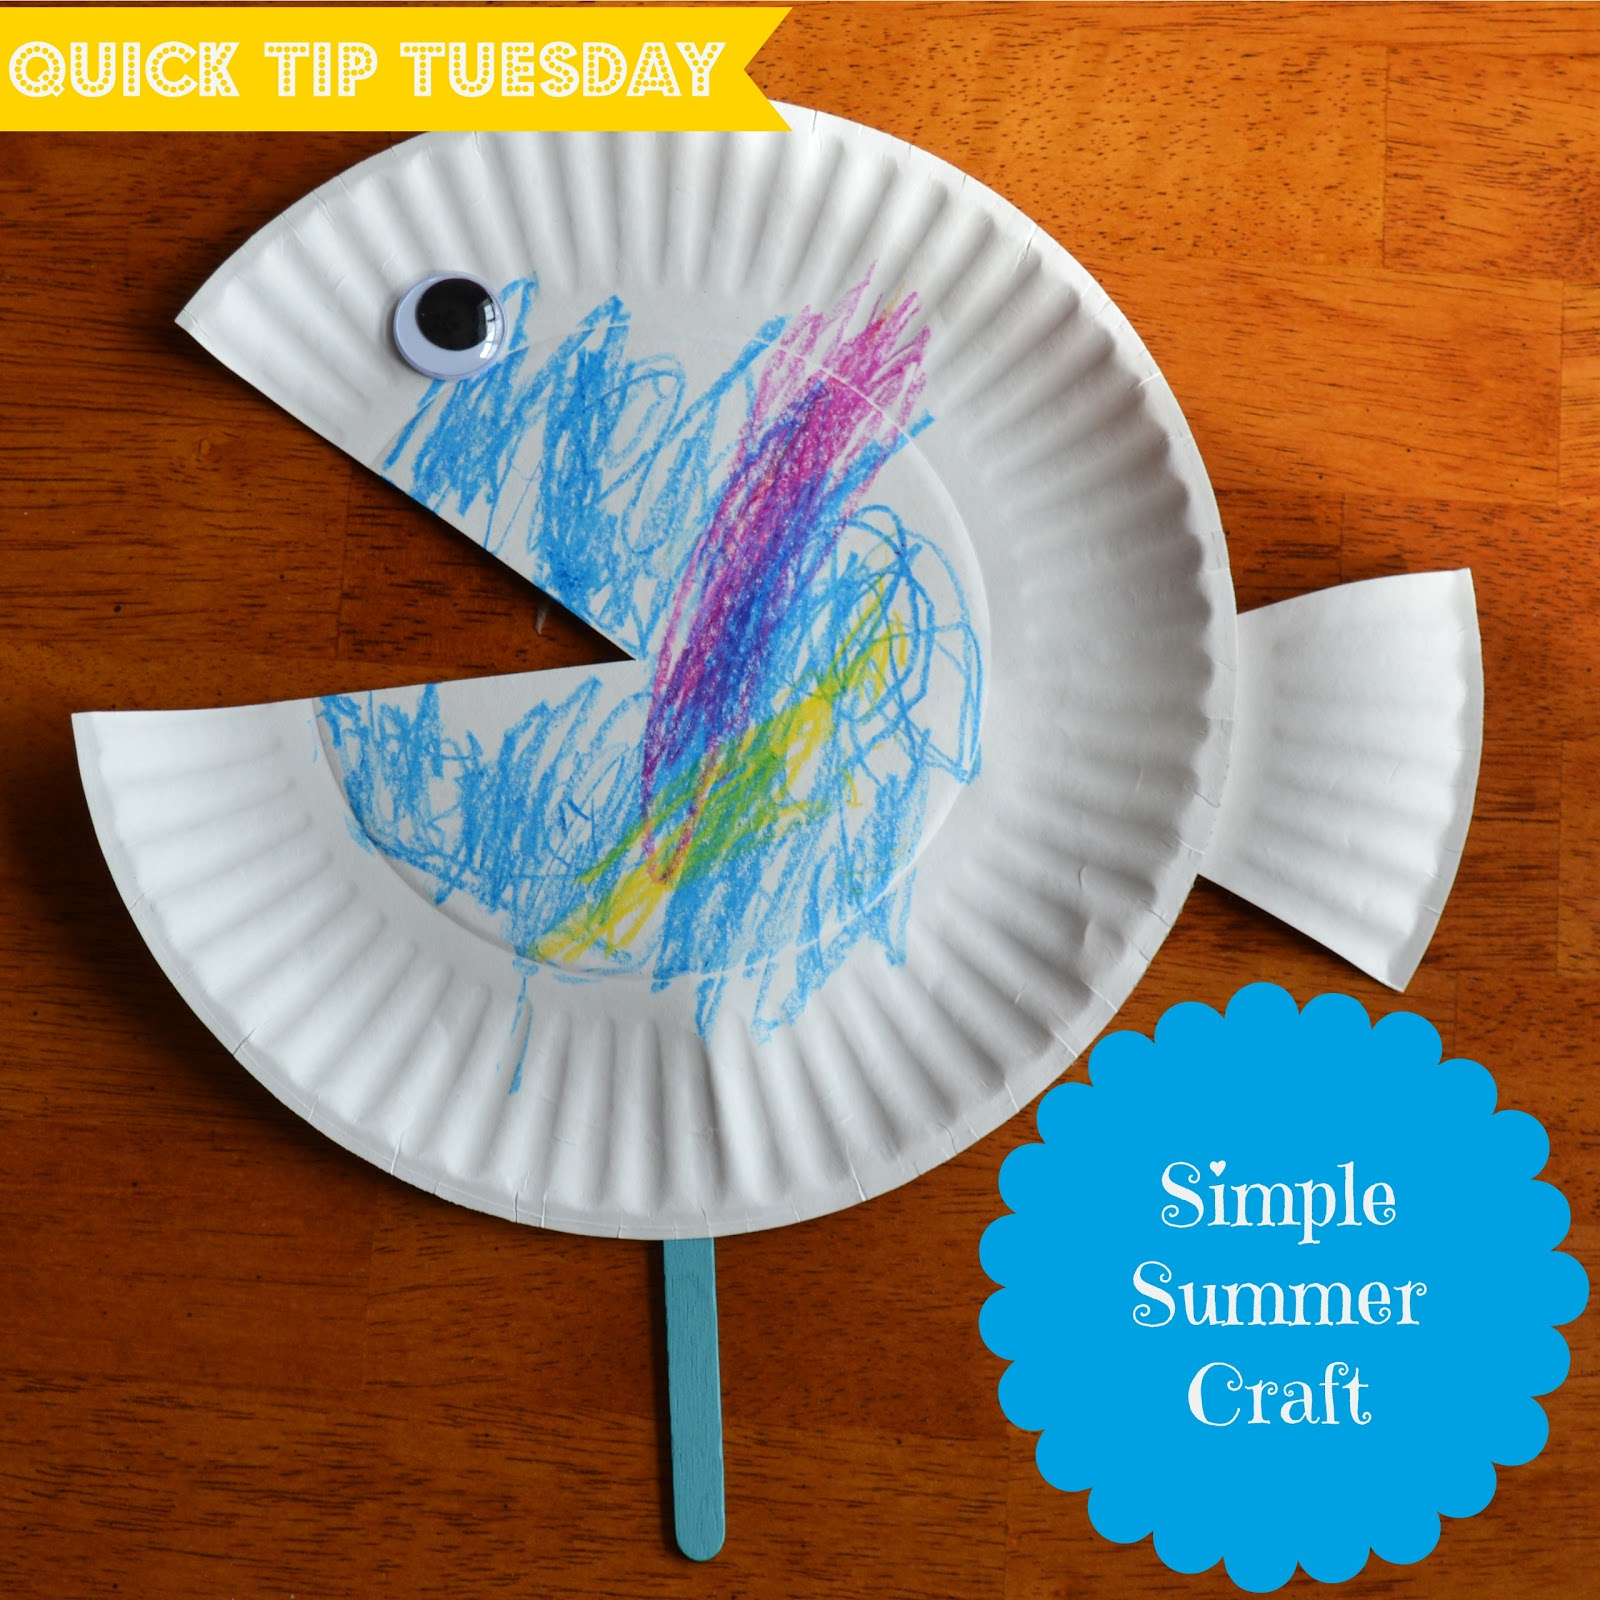 East coast mommy quick tip tuesday 5 simple summer craft for How to make craft